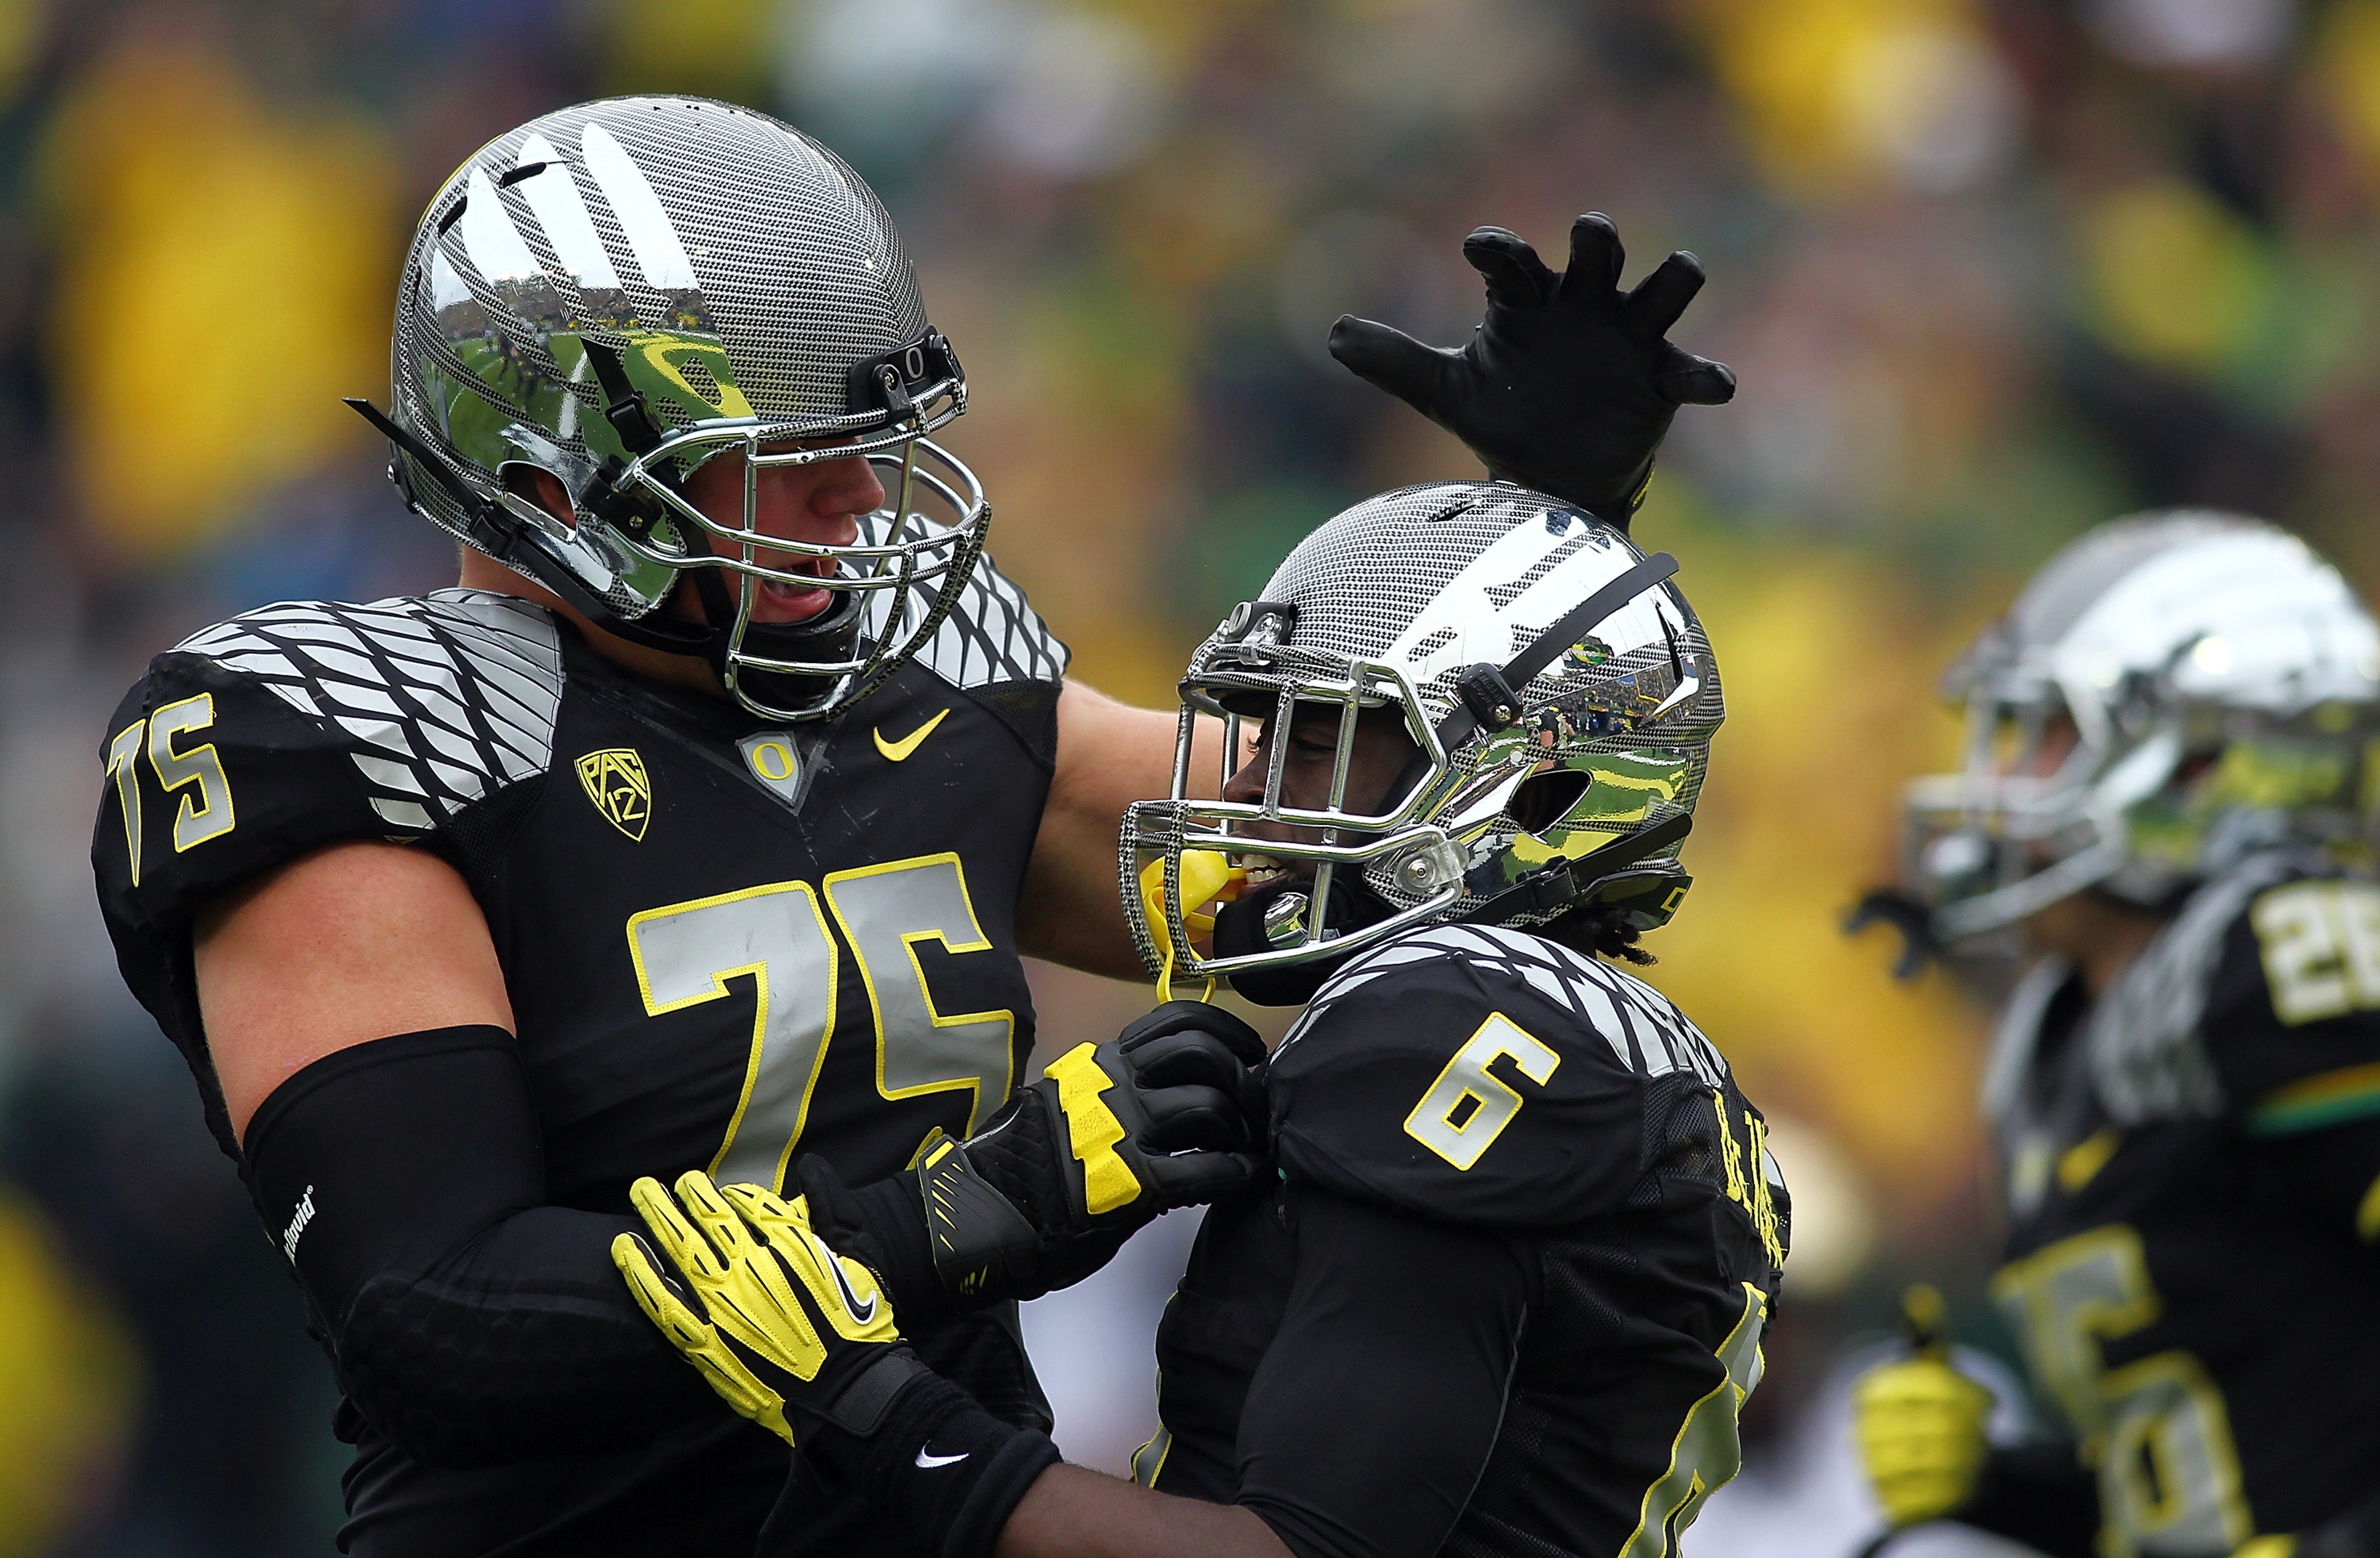 Tongue-in-cheek Oregon player: 'We're really, really intimidated by the SEC'